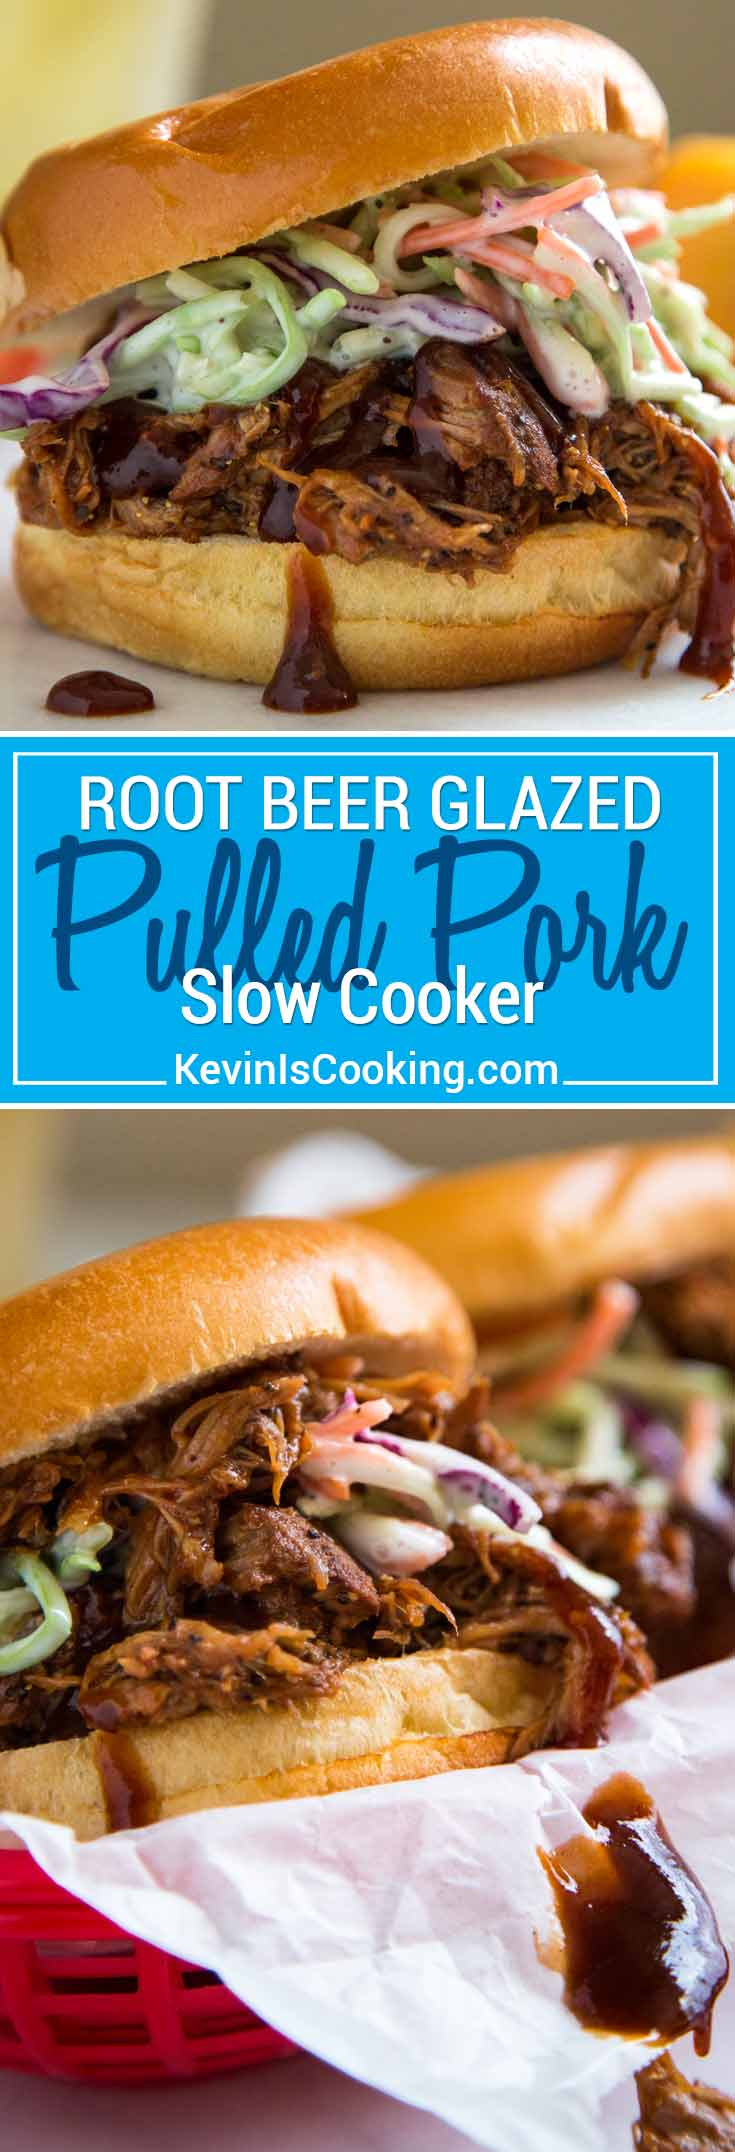 This Root Beer Glazed Slow Cooker Pulled Pork is juicy, tender and sticky sweet with a bite, and gets a dose of reduced root beer for an extra flavor punch!